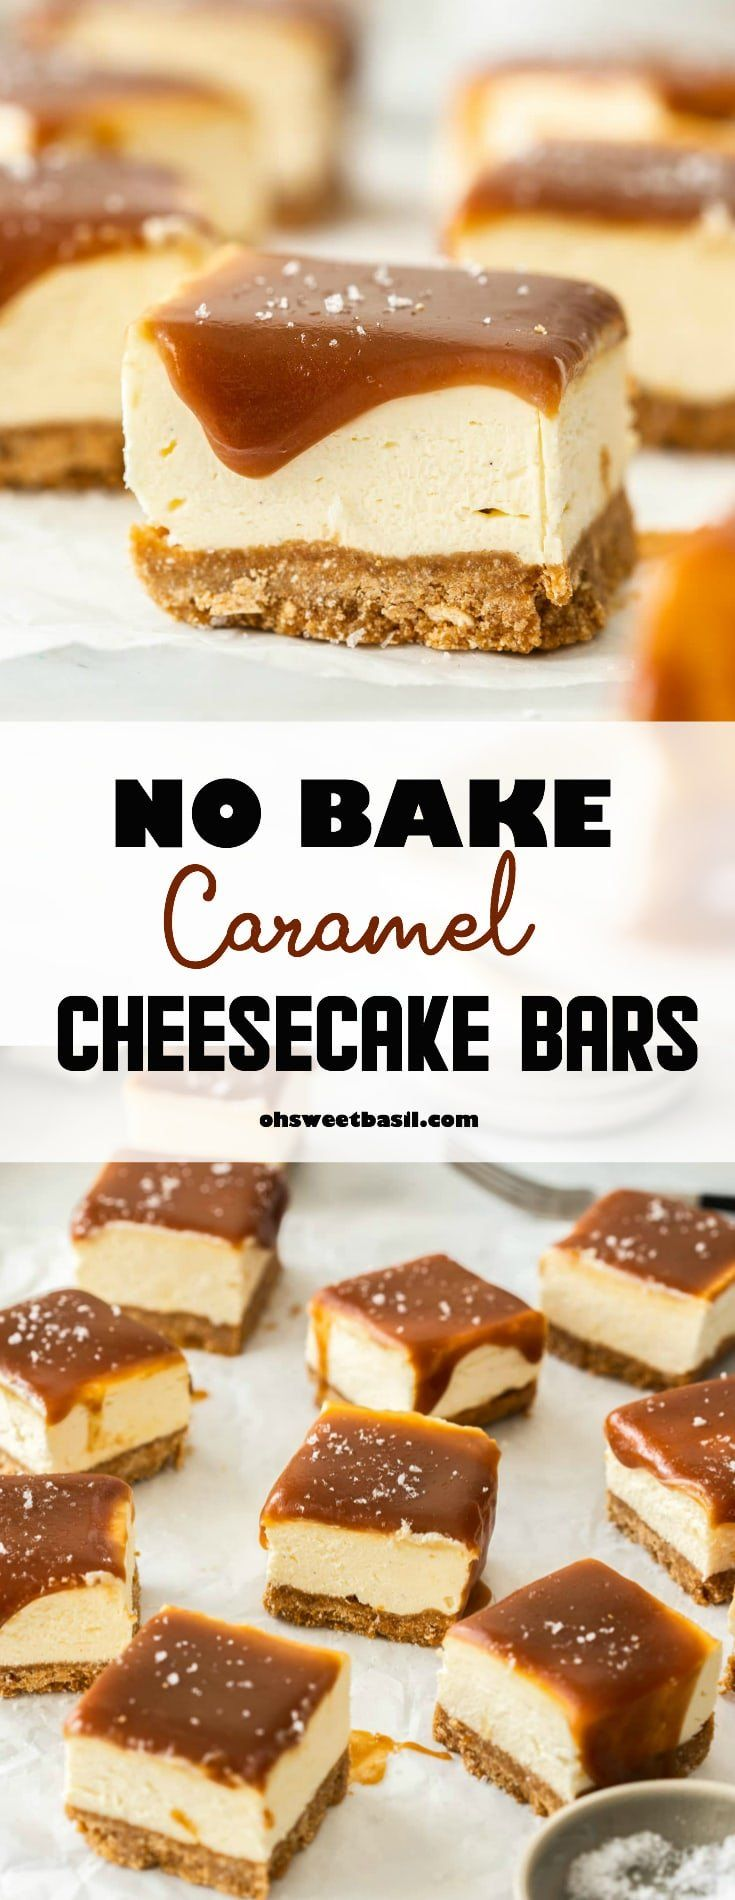 It really doesn't get better than these No Bake Caramel Cheesecake Bars. A